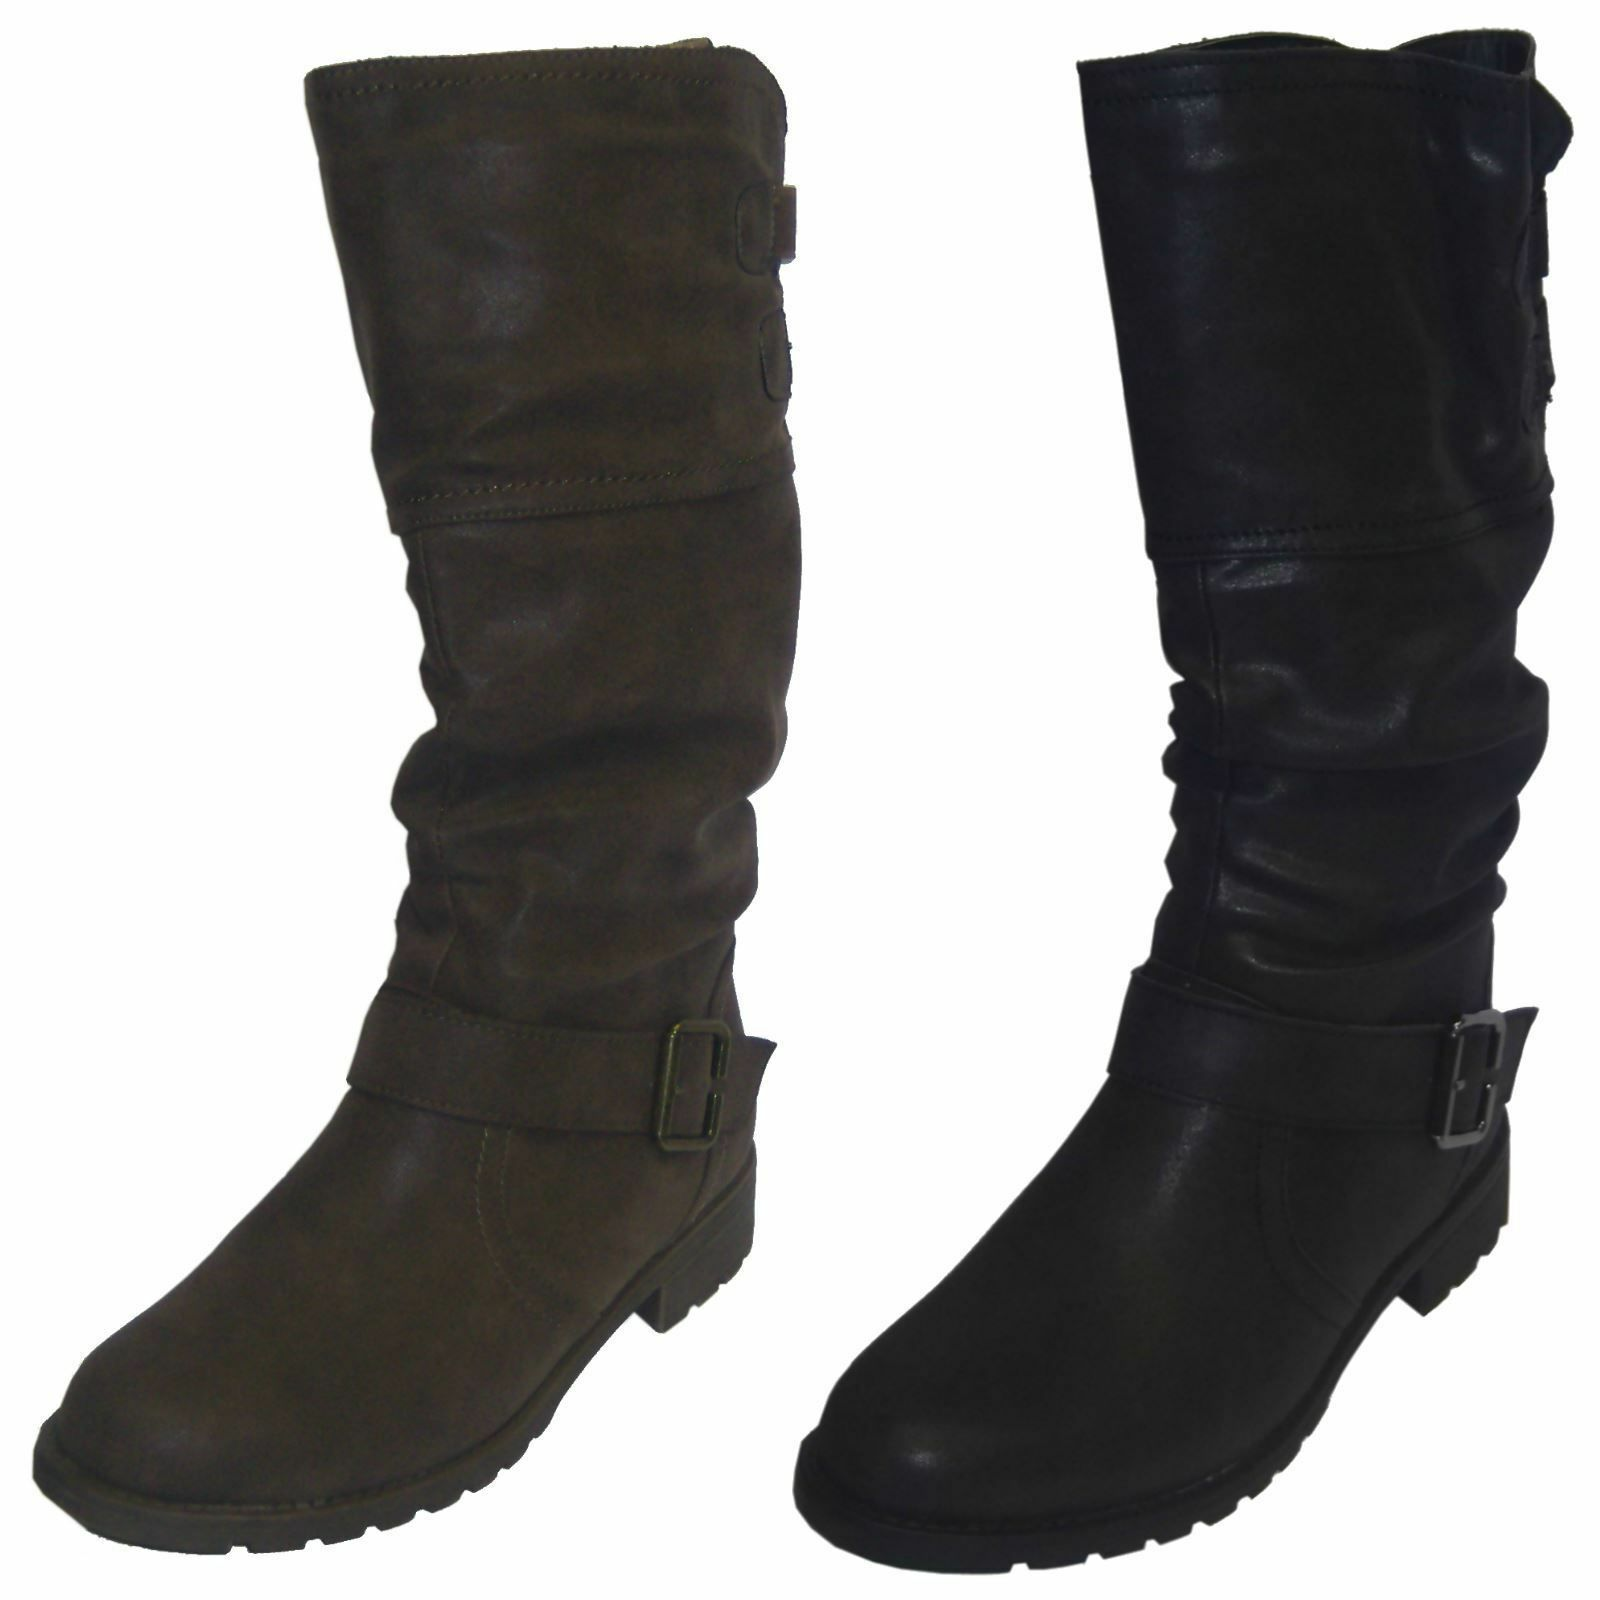 Ladies Spot On! F50321 Synthetic Casual Warm Lined Mid Calf Boots